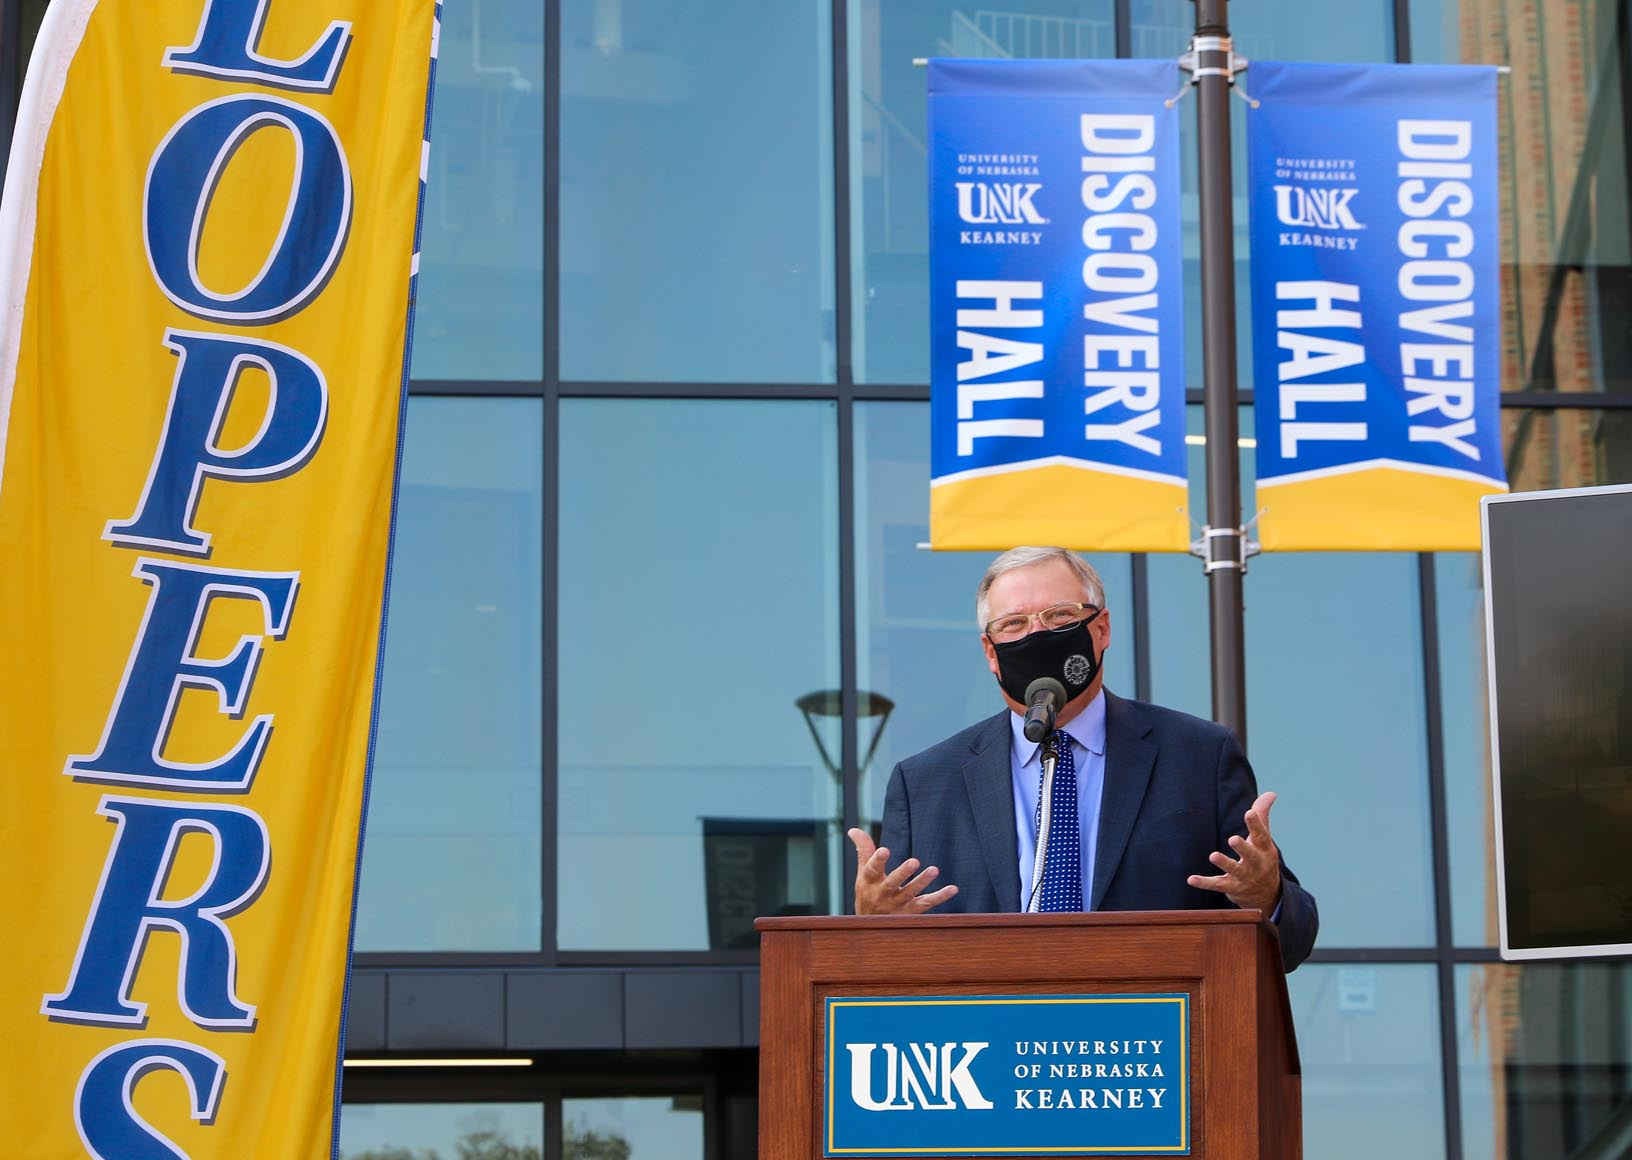 Chancellor Doug Kristensen speaks during Monday's ribbon-cutting ceremony celebrating the grand opening of Discovery Hall, a 90,000-square-foot STEM facility located on UNK's west campus. (Photos by Todd Gottula, UNK Communications)